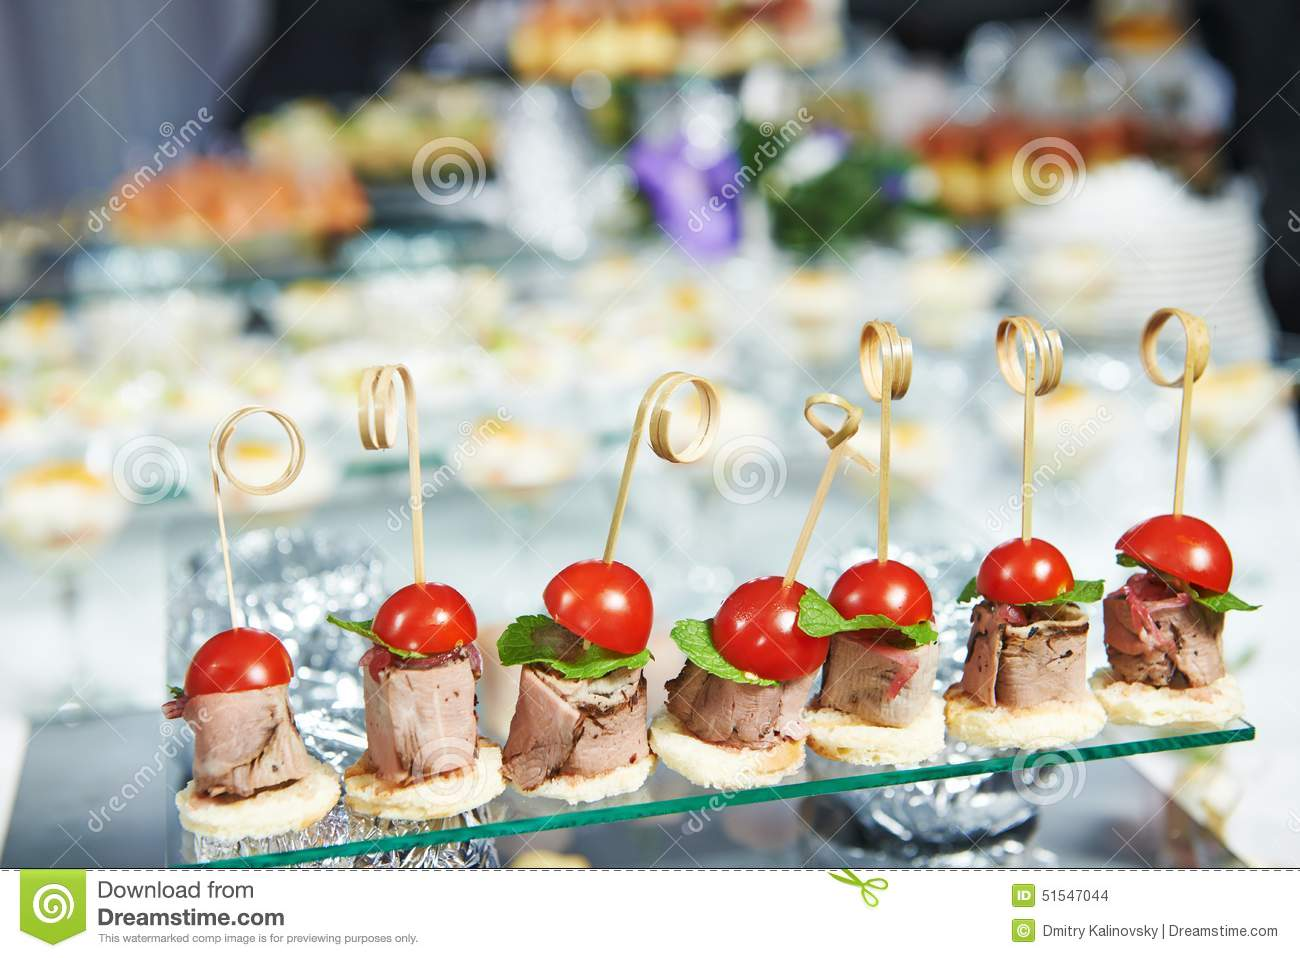 Food service and event catering